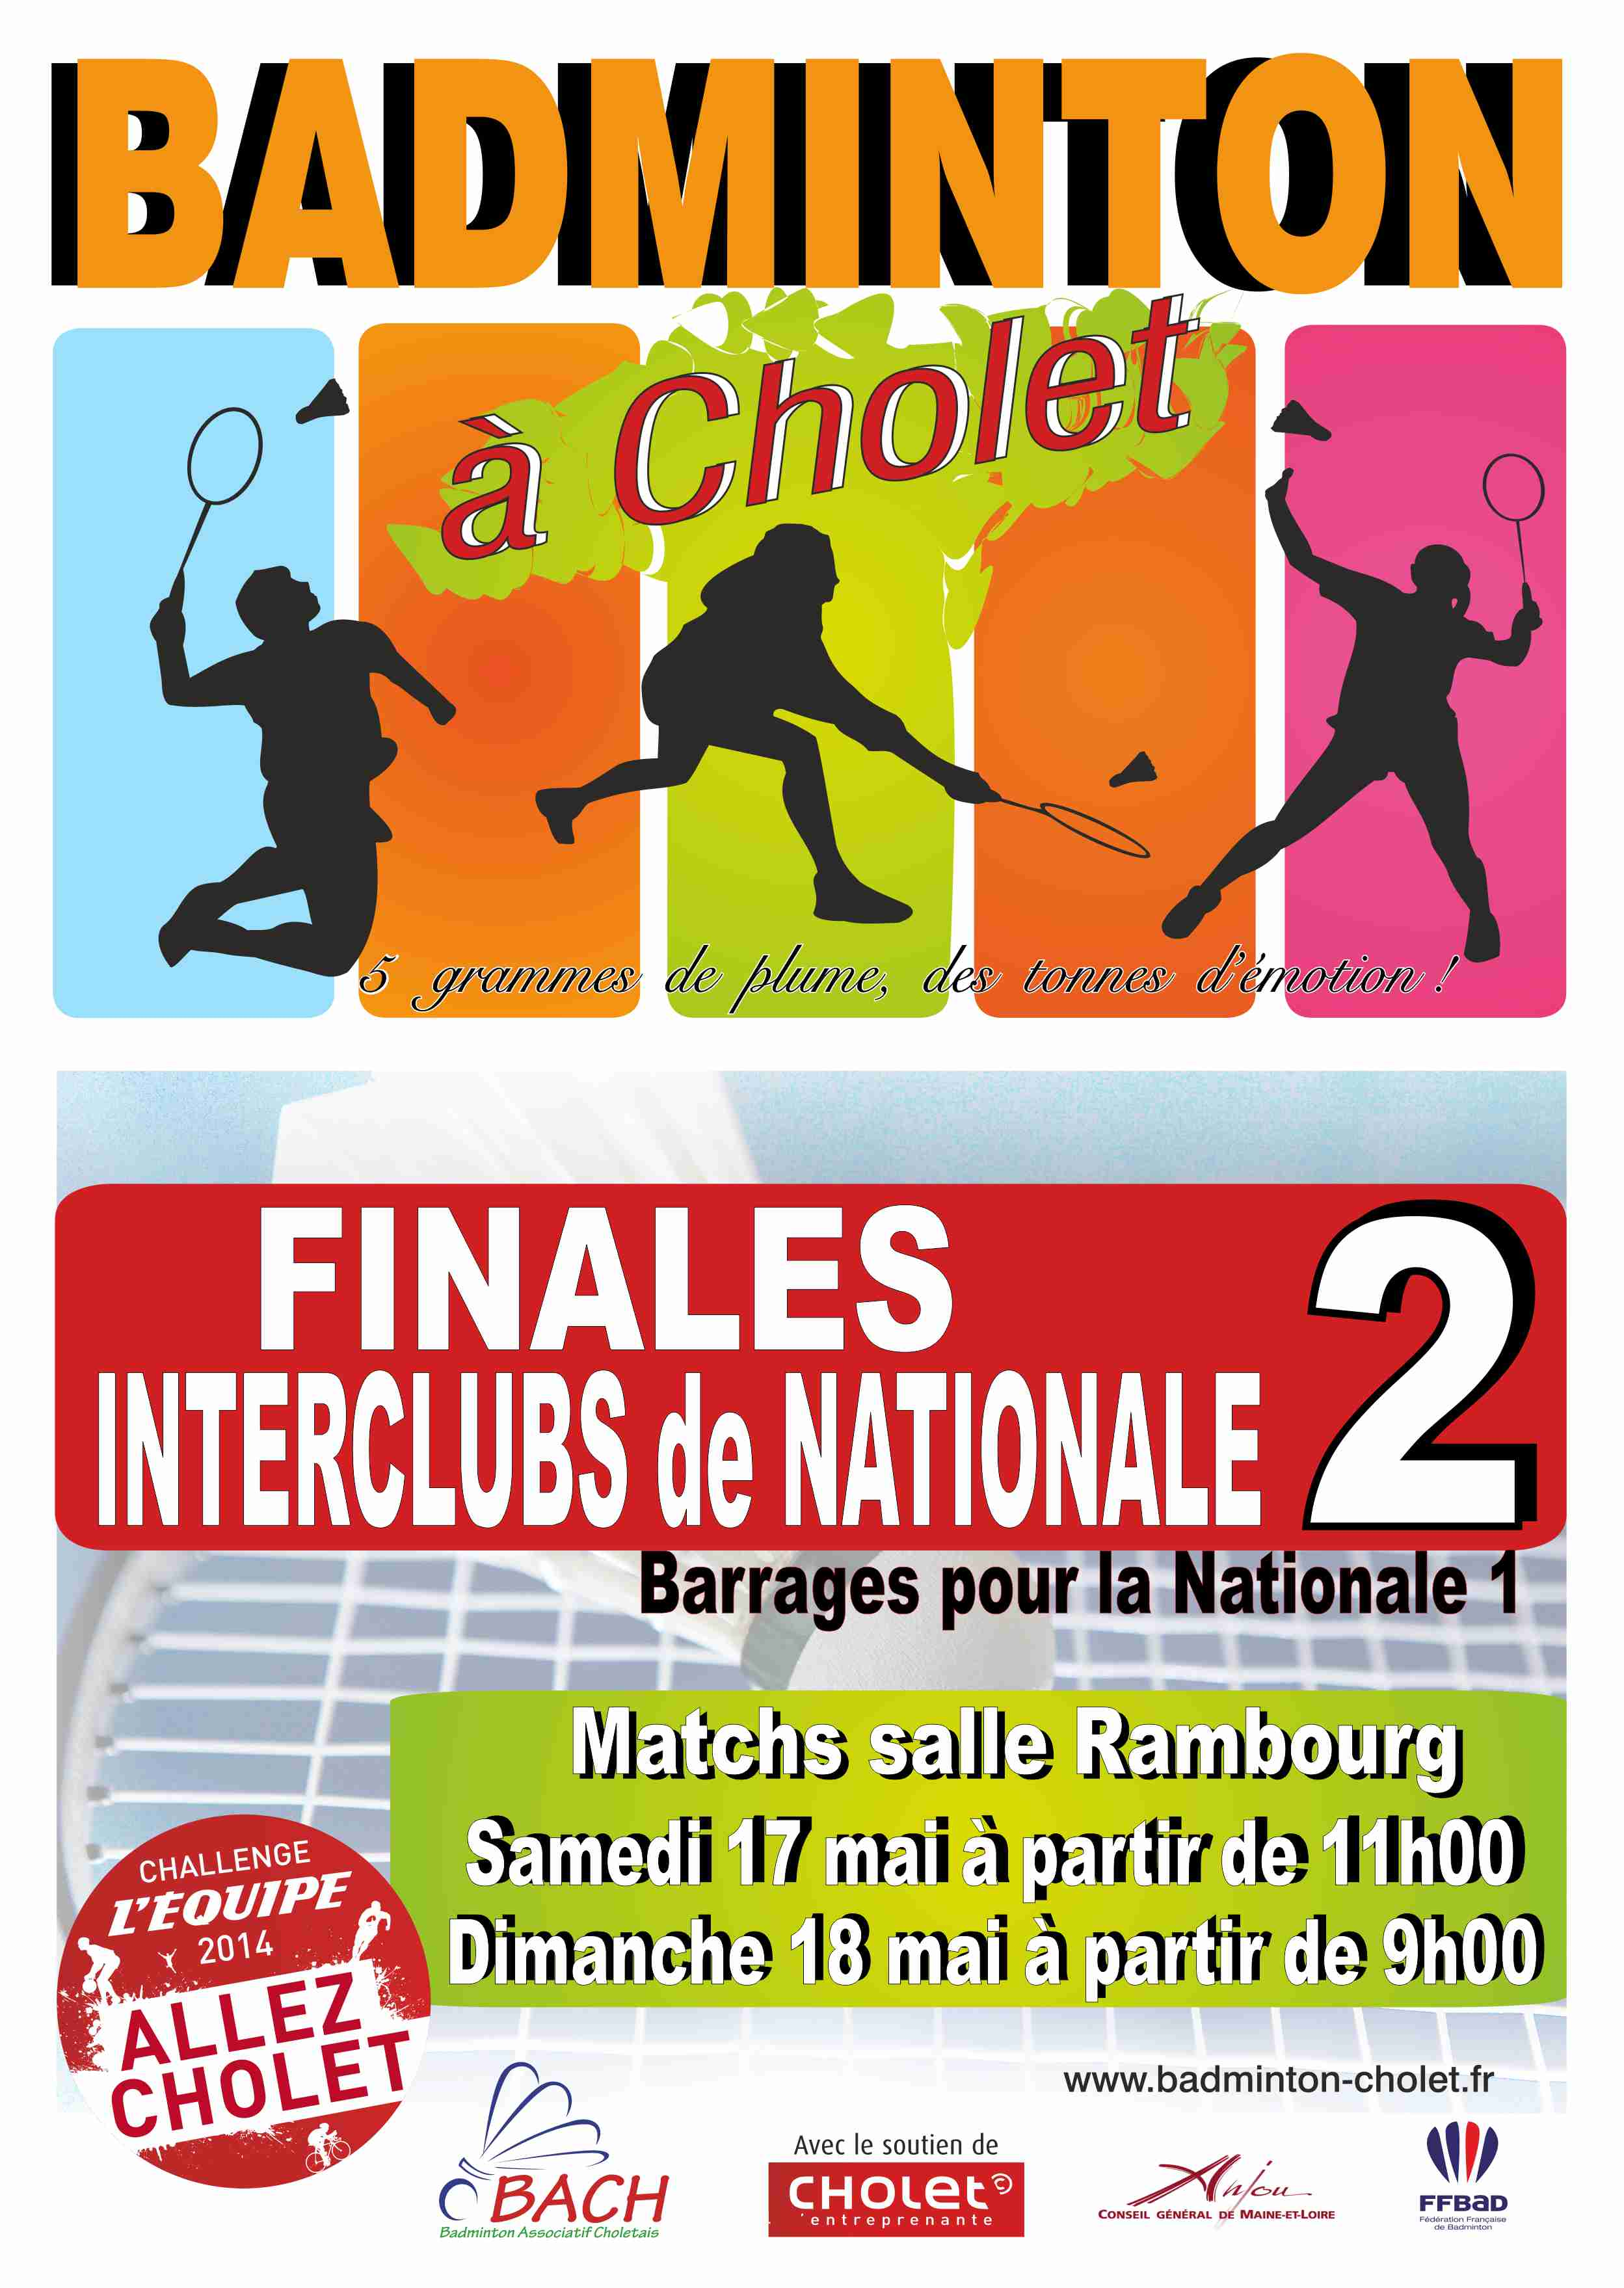 barrages-badminton-cholet